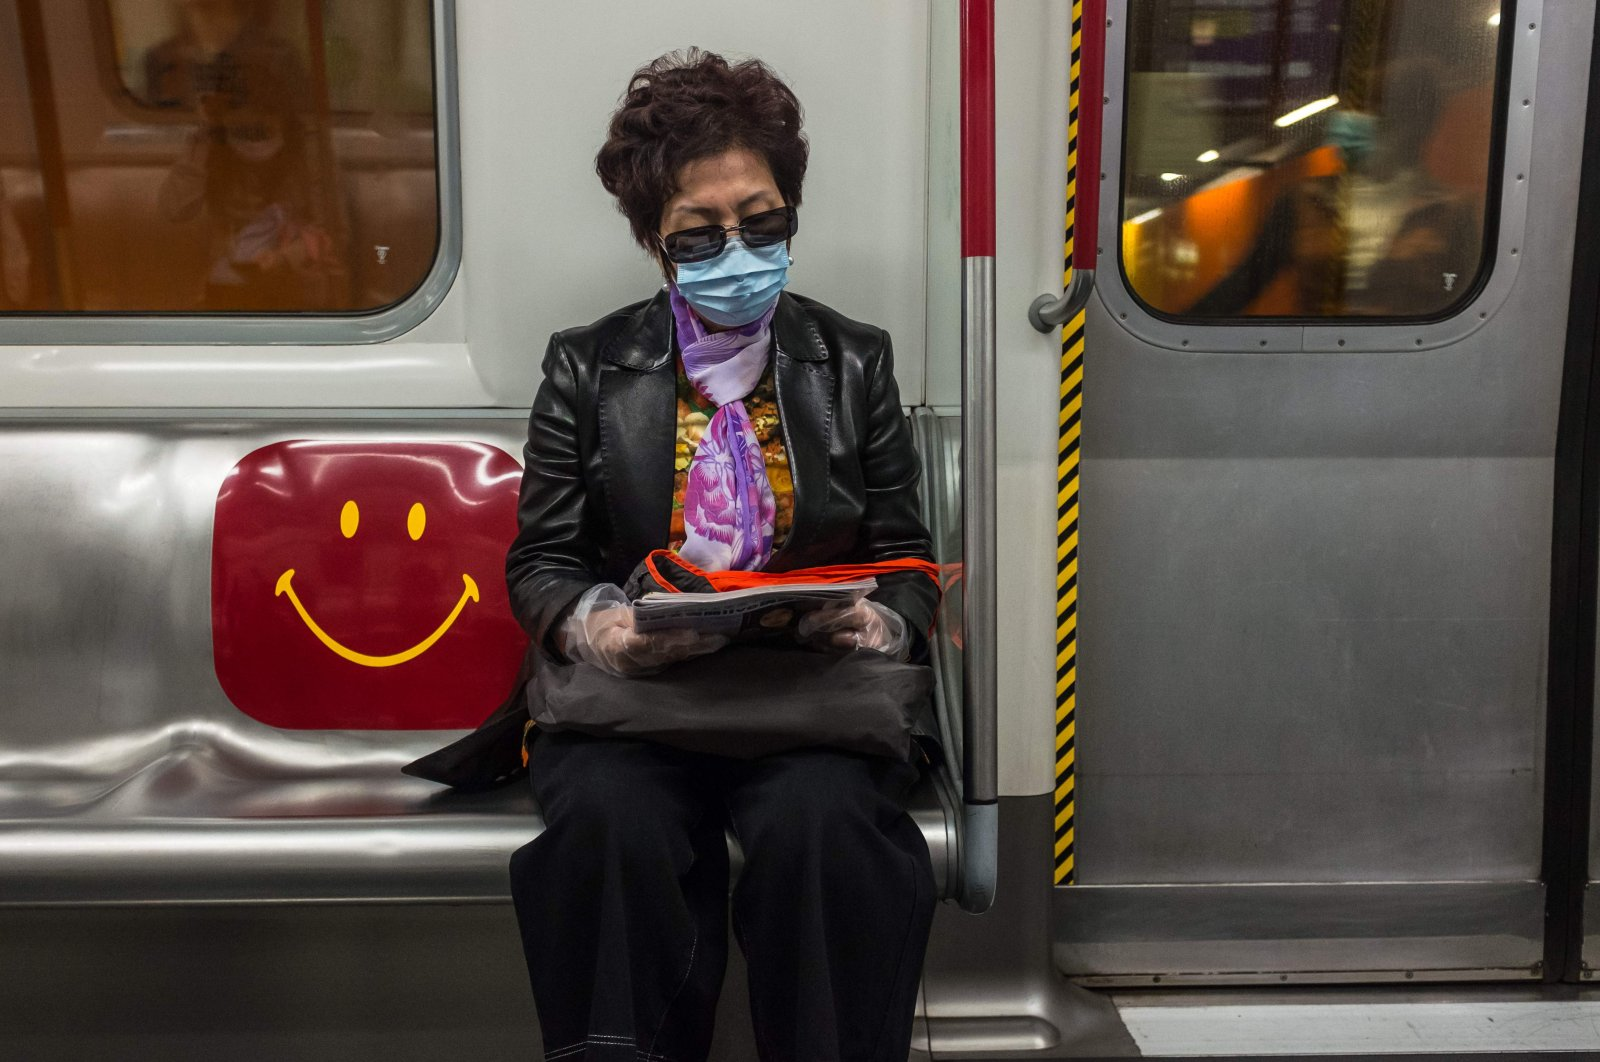 A woman wearing a face mask amid concerns of the COVID-19 pandemic commutes on a train in Hong Kong, Saturday, April 4, 2020. (AFP Photo)